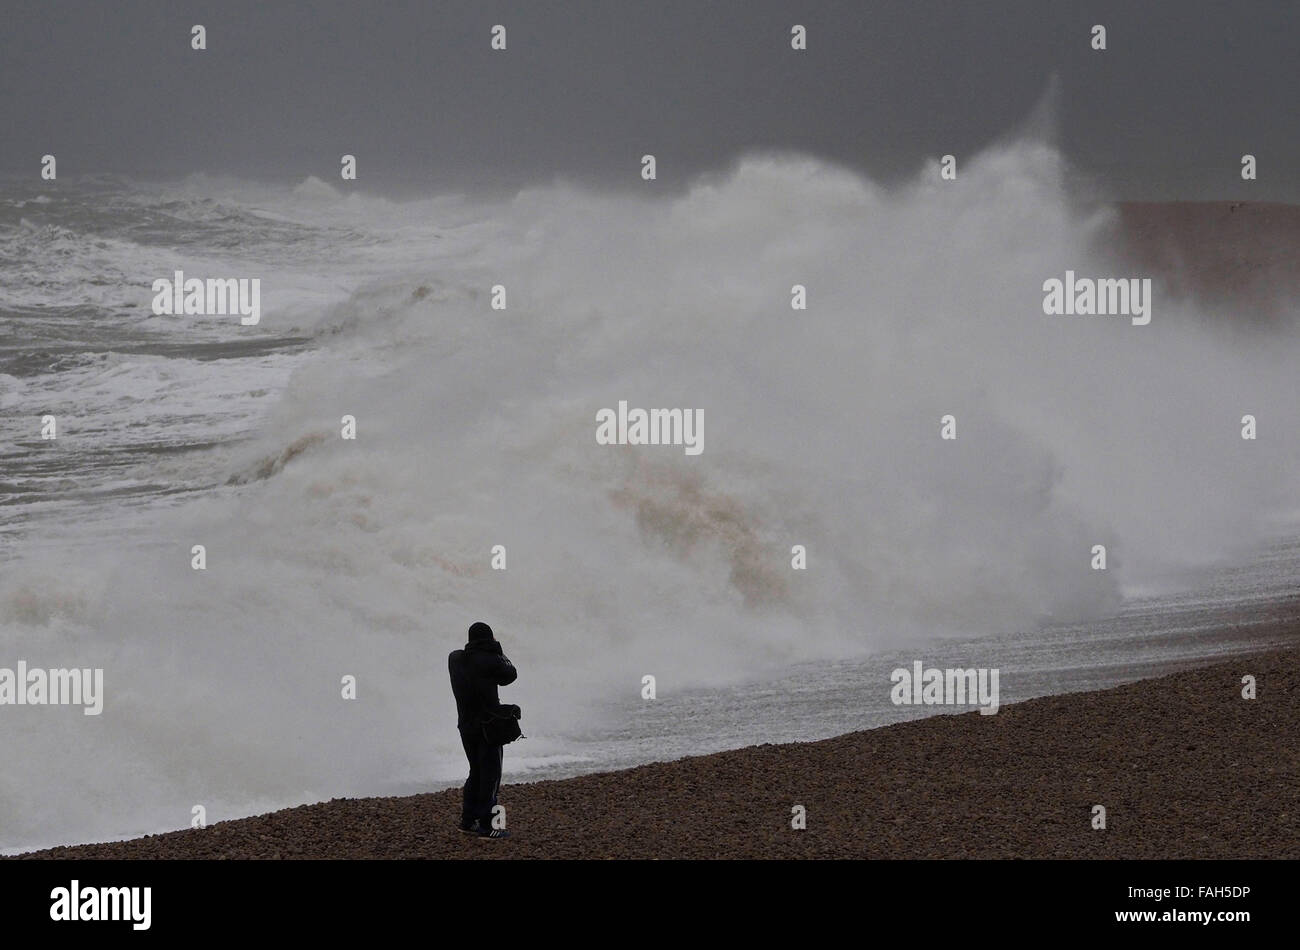 Dorset, UK. 30th Dec, 2015. Taking snaps and taking risk as this wave watcher was caught by the sea at Chesil Cove, Stock Photo